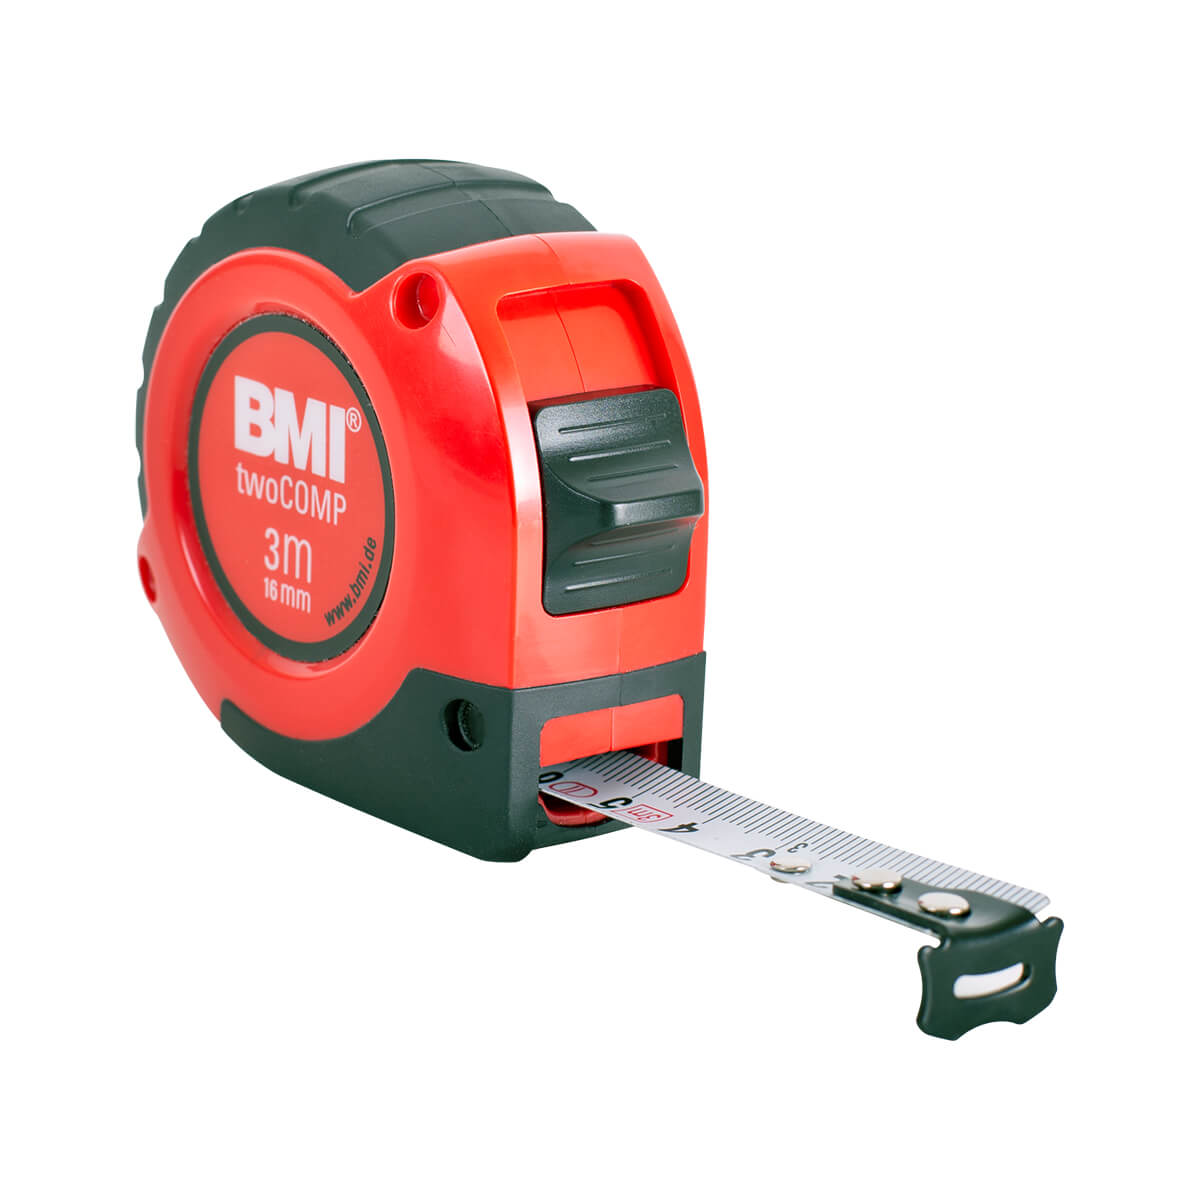 BMI twoCOMP MAGNETIC 3 M